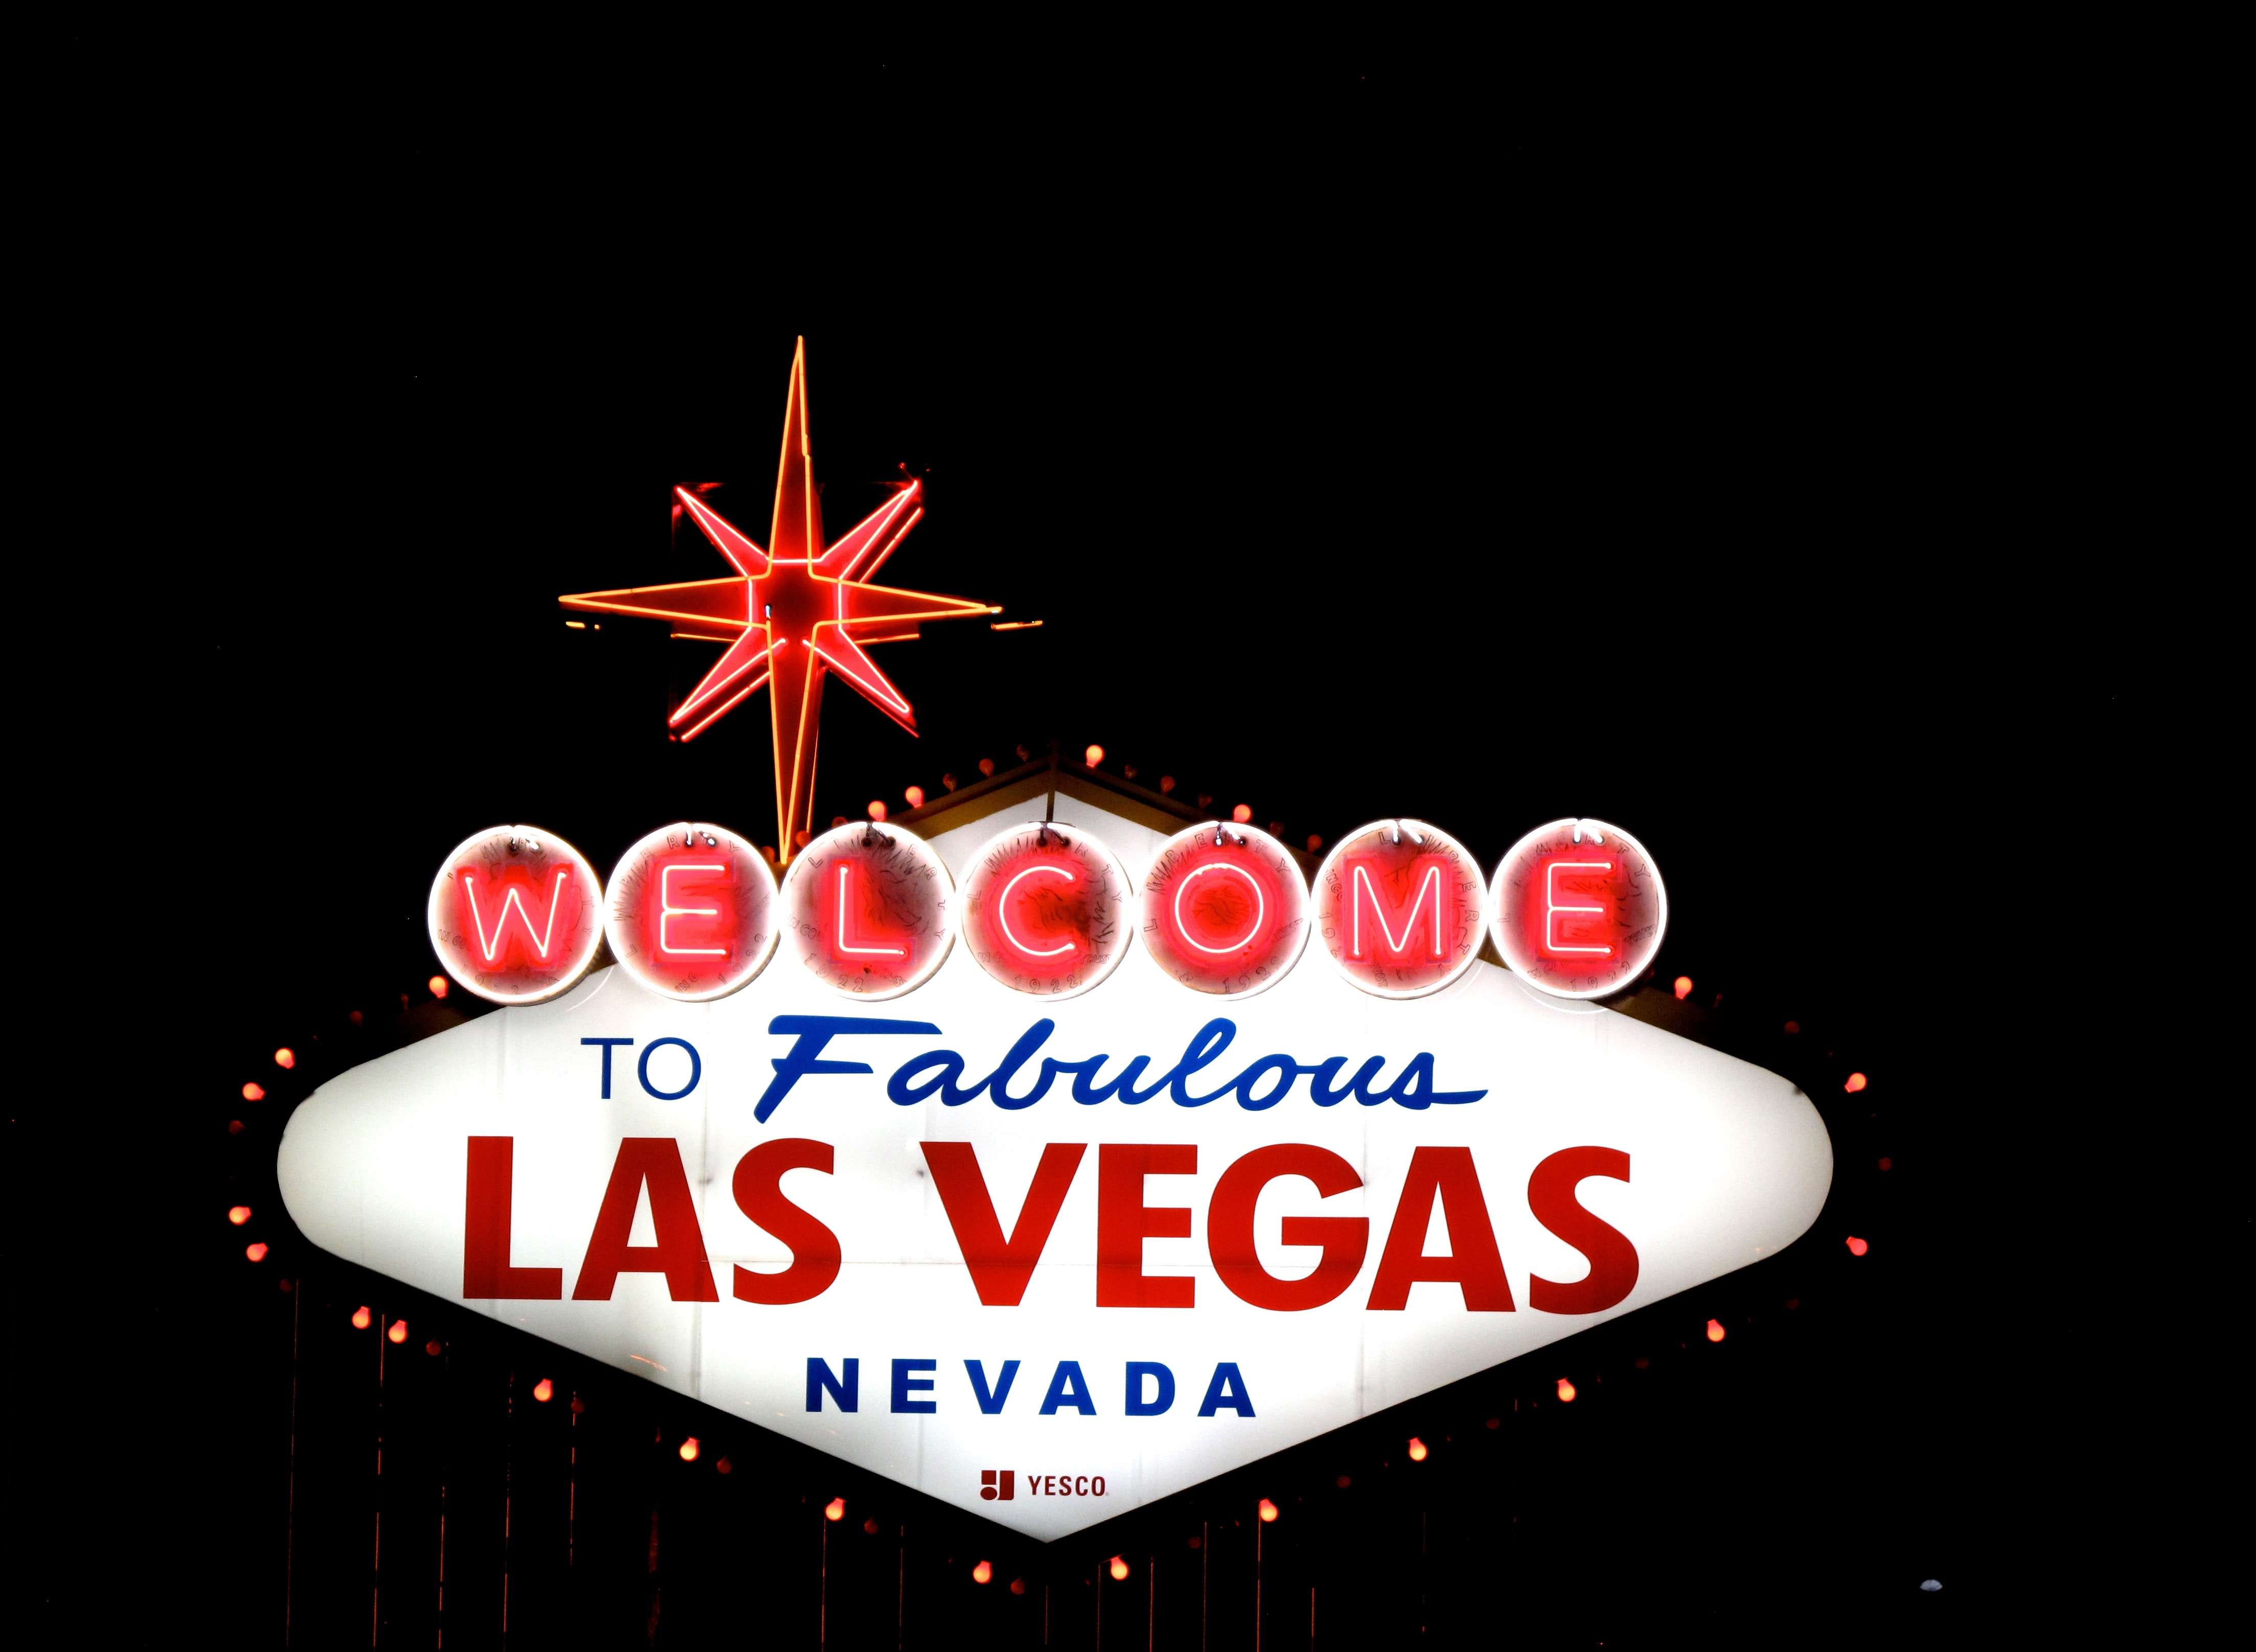 To Fabulous Las Vegas Nevada signage